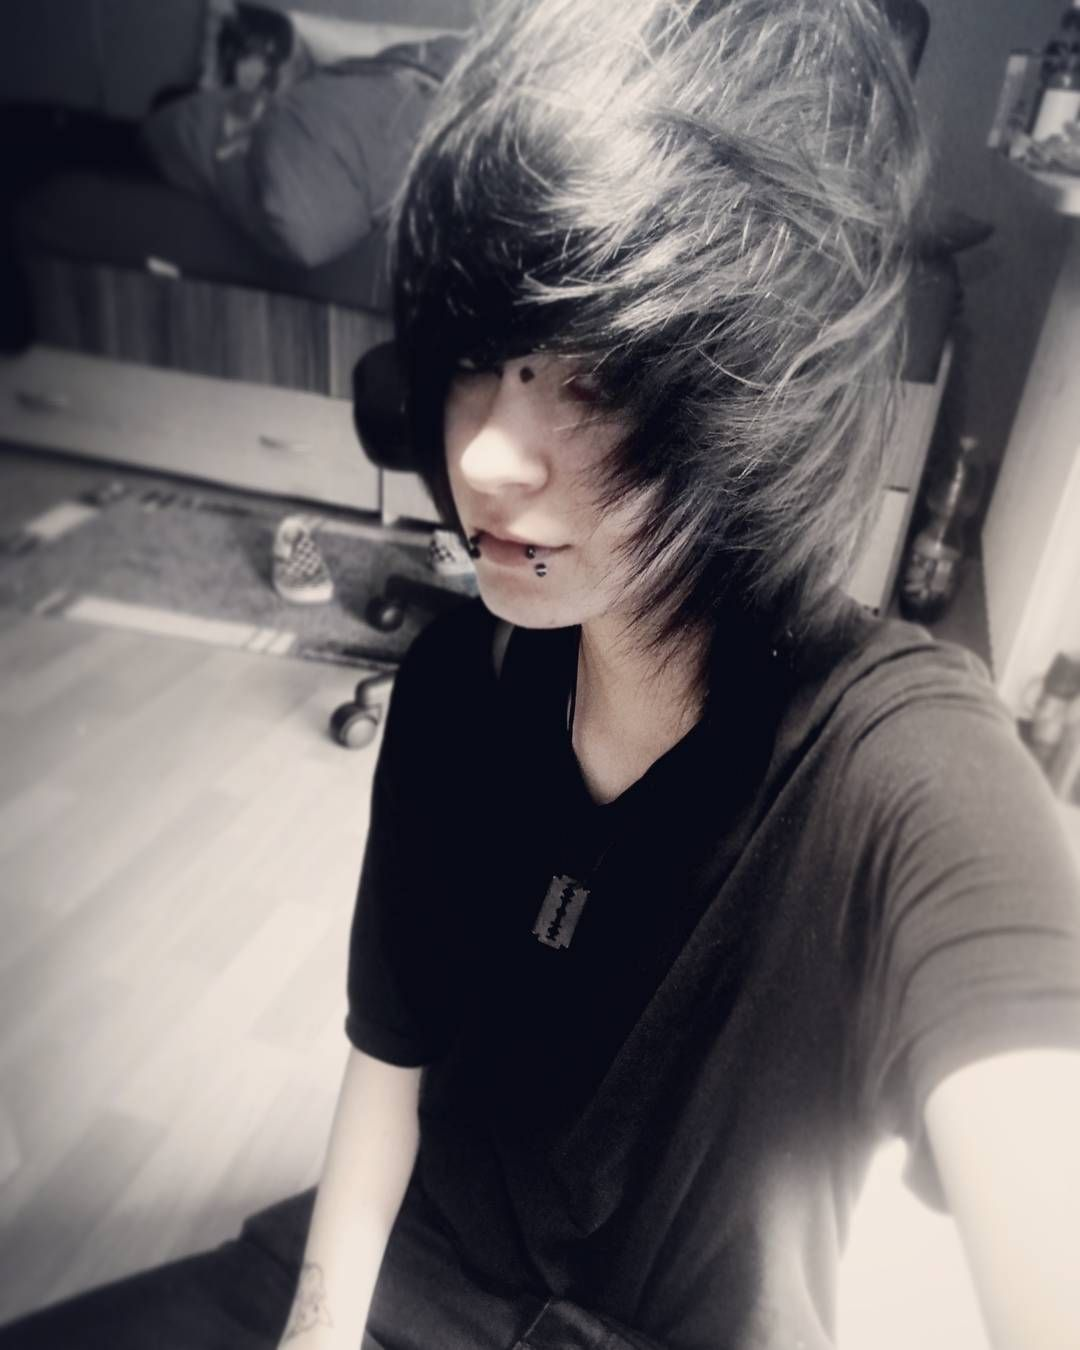 Xsaschakunx emo pinterest emo emo boys and emo scene